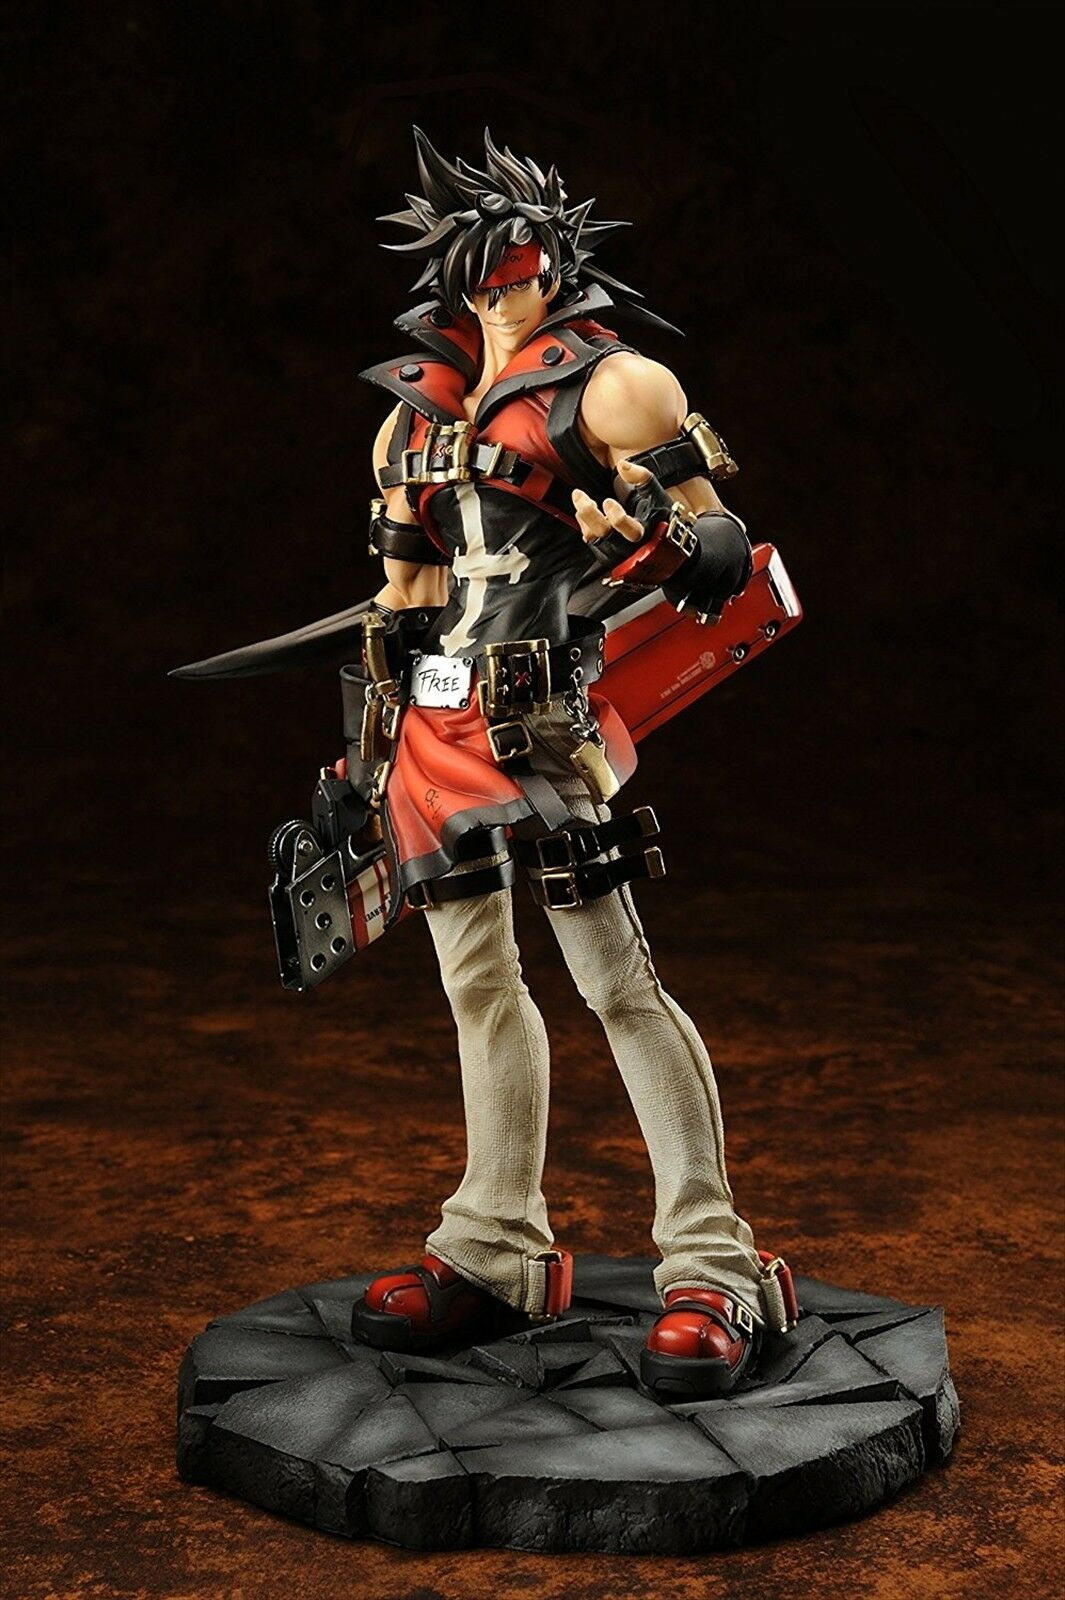 Guilty Gear Xrd Xrd Xrd -Sign- Sol Badguy Normal edizione 1 8 PVC cifra Embrace USED 51f638